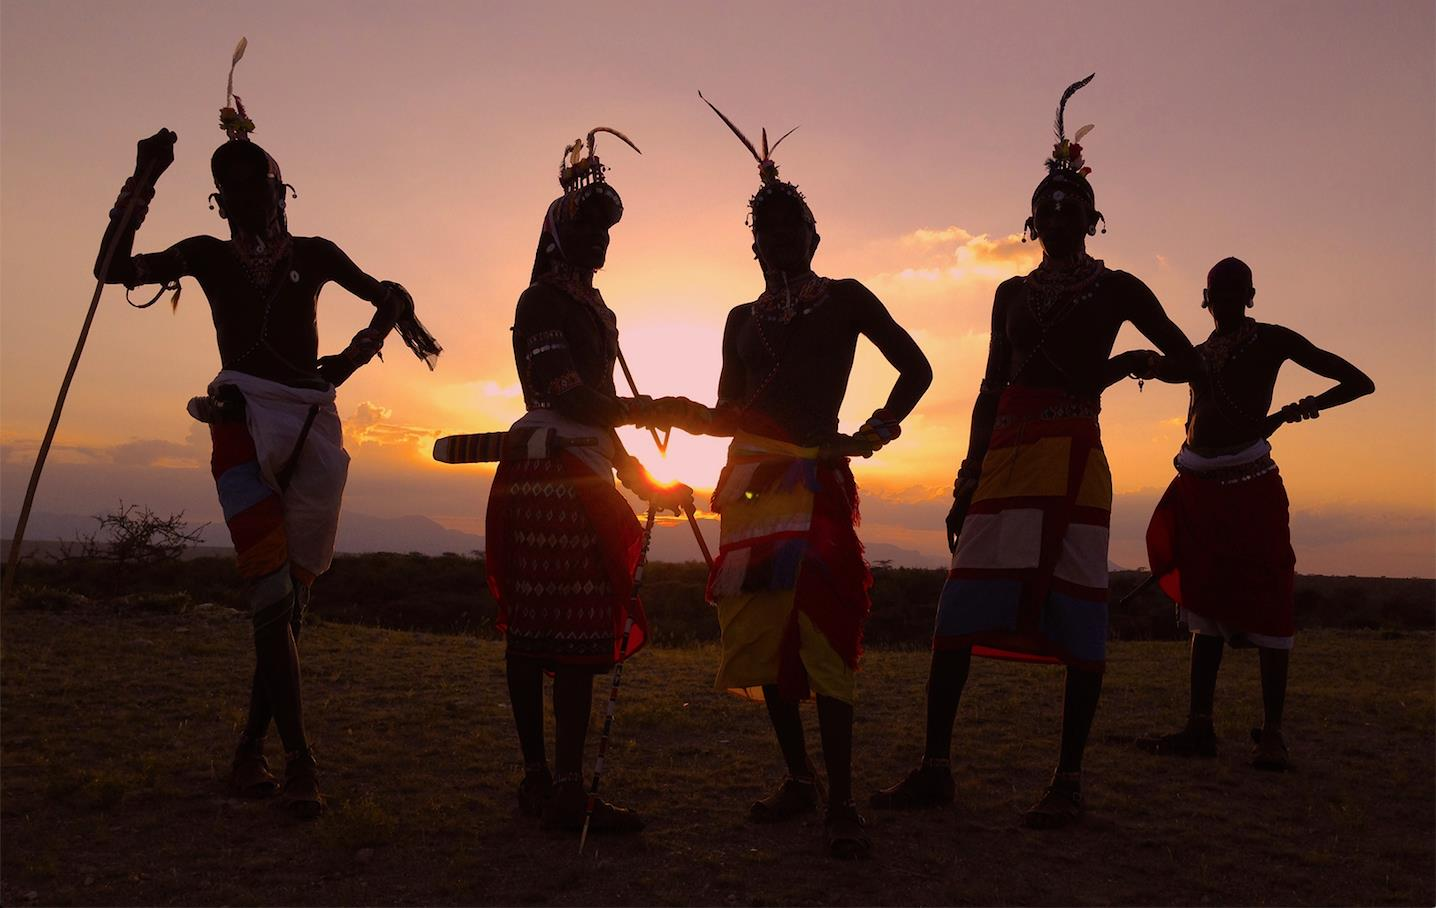 Sunset and 5 Samburu warriors © Saba Douglas-Hamilton